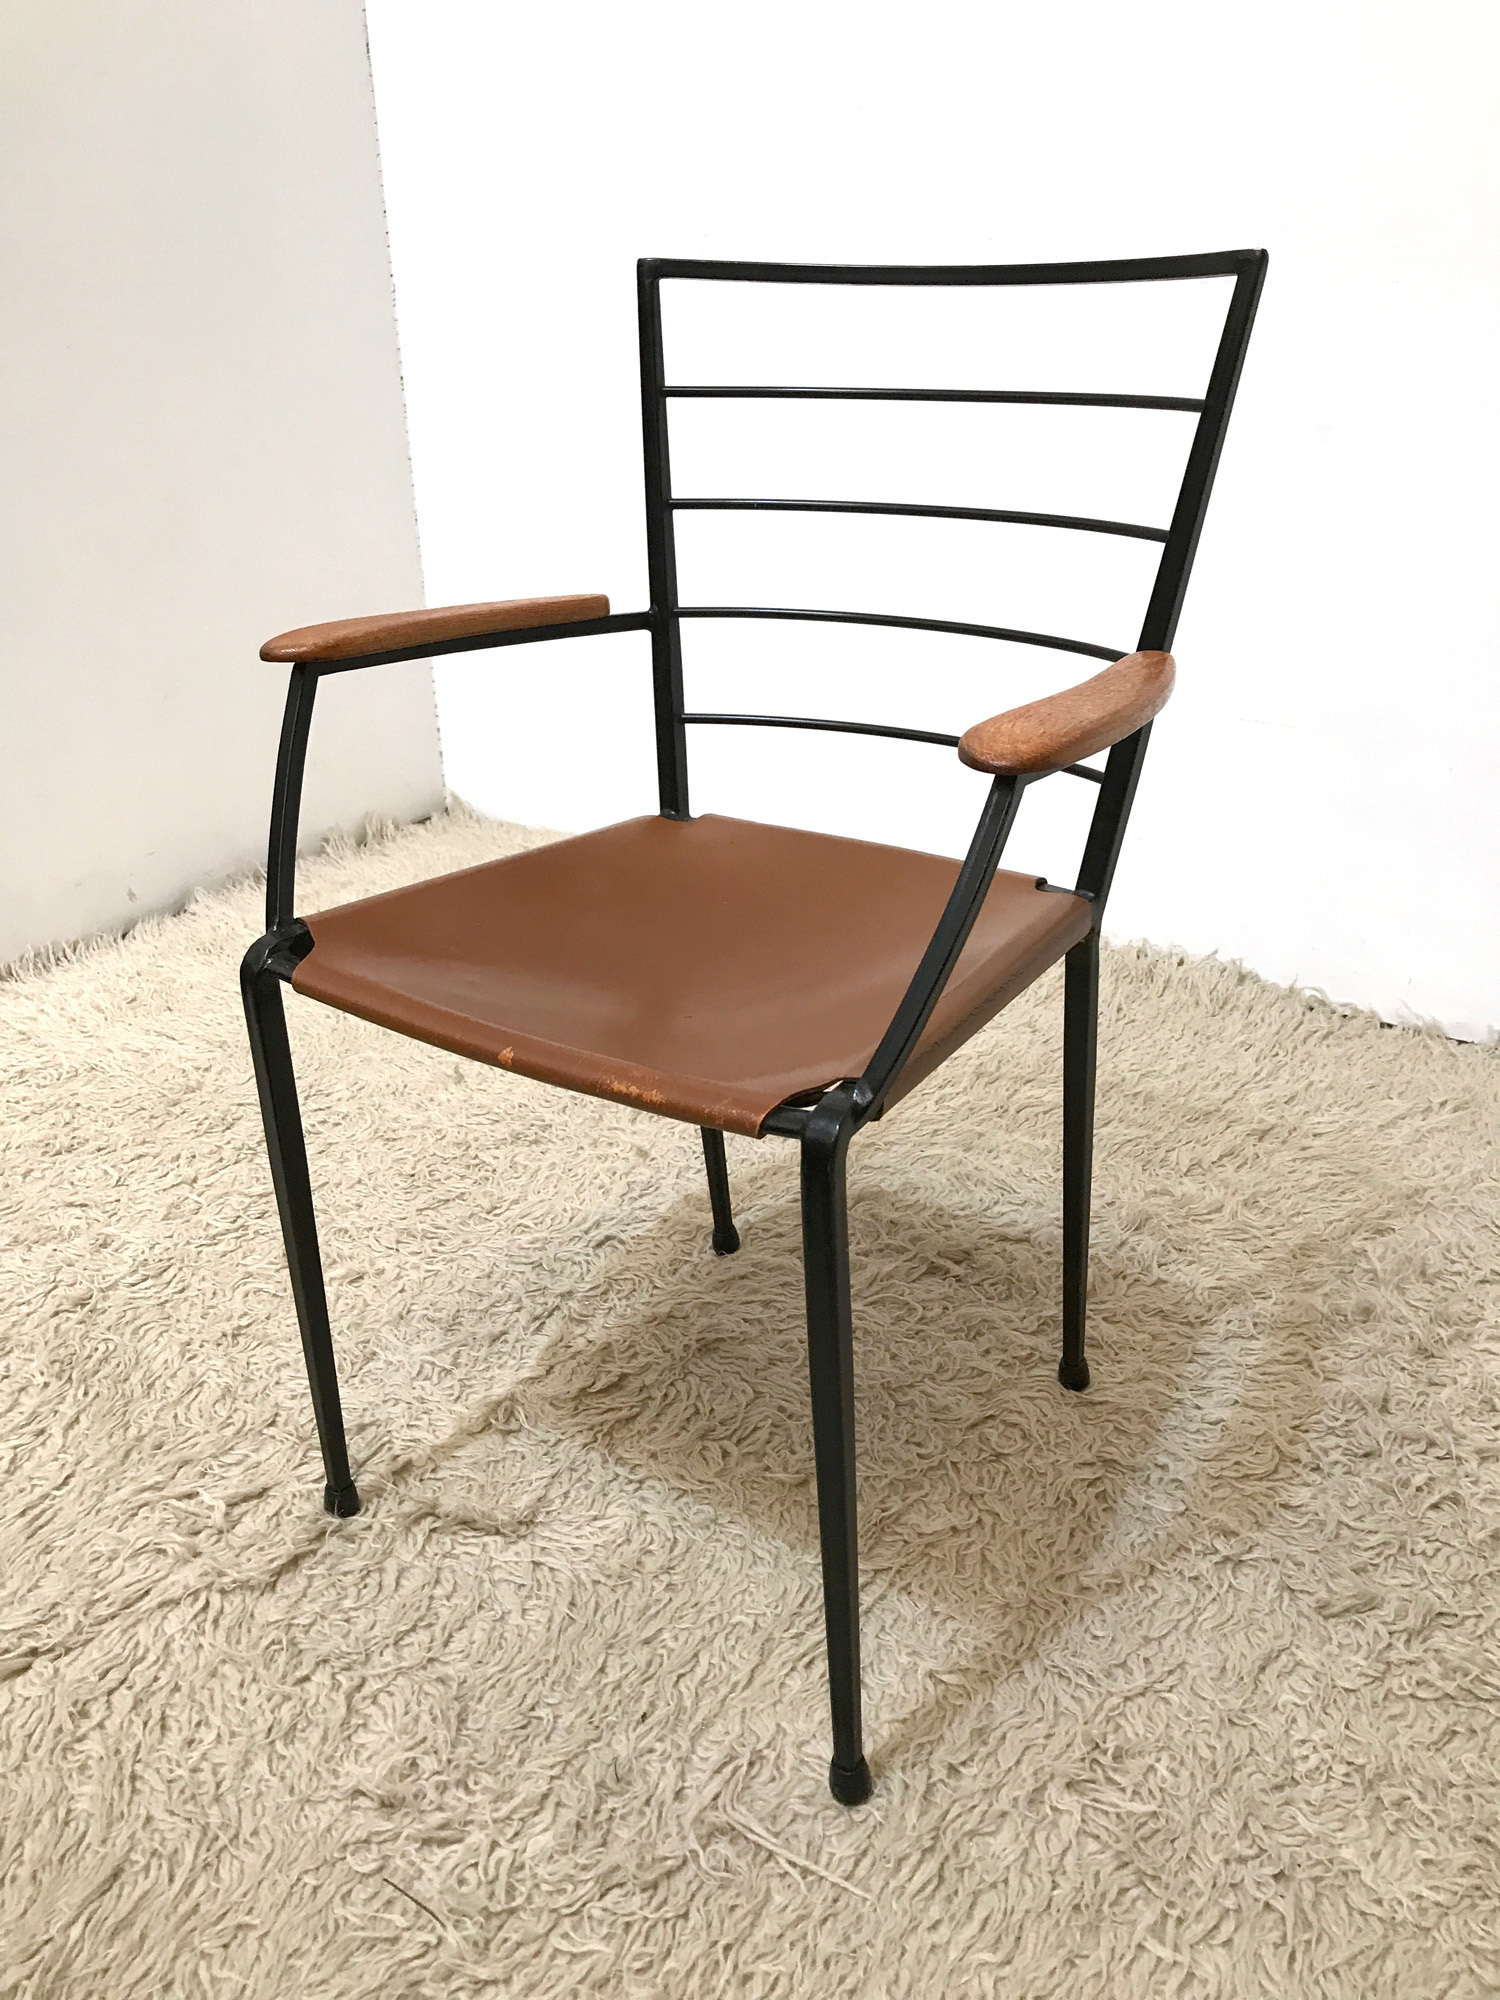 Wondrous 60S Rare Staples Ladderax Metal And Leather Dining Chair Armchair Heals Andrewgaddart Wooden Chair Designs For Living Room Andrewgaddartcom